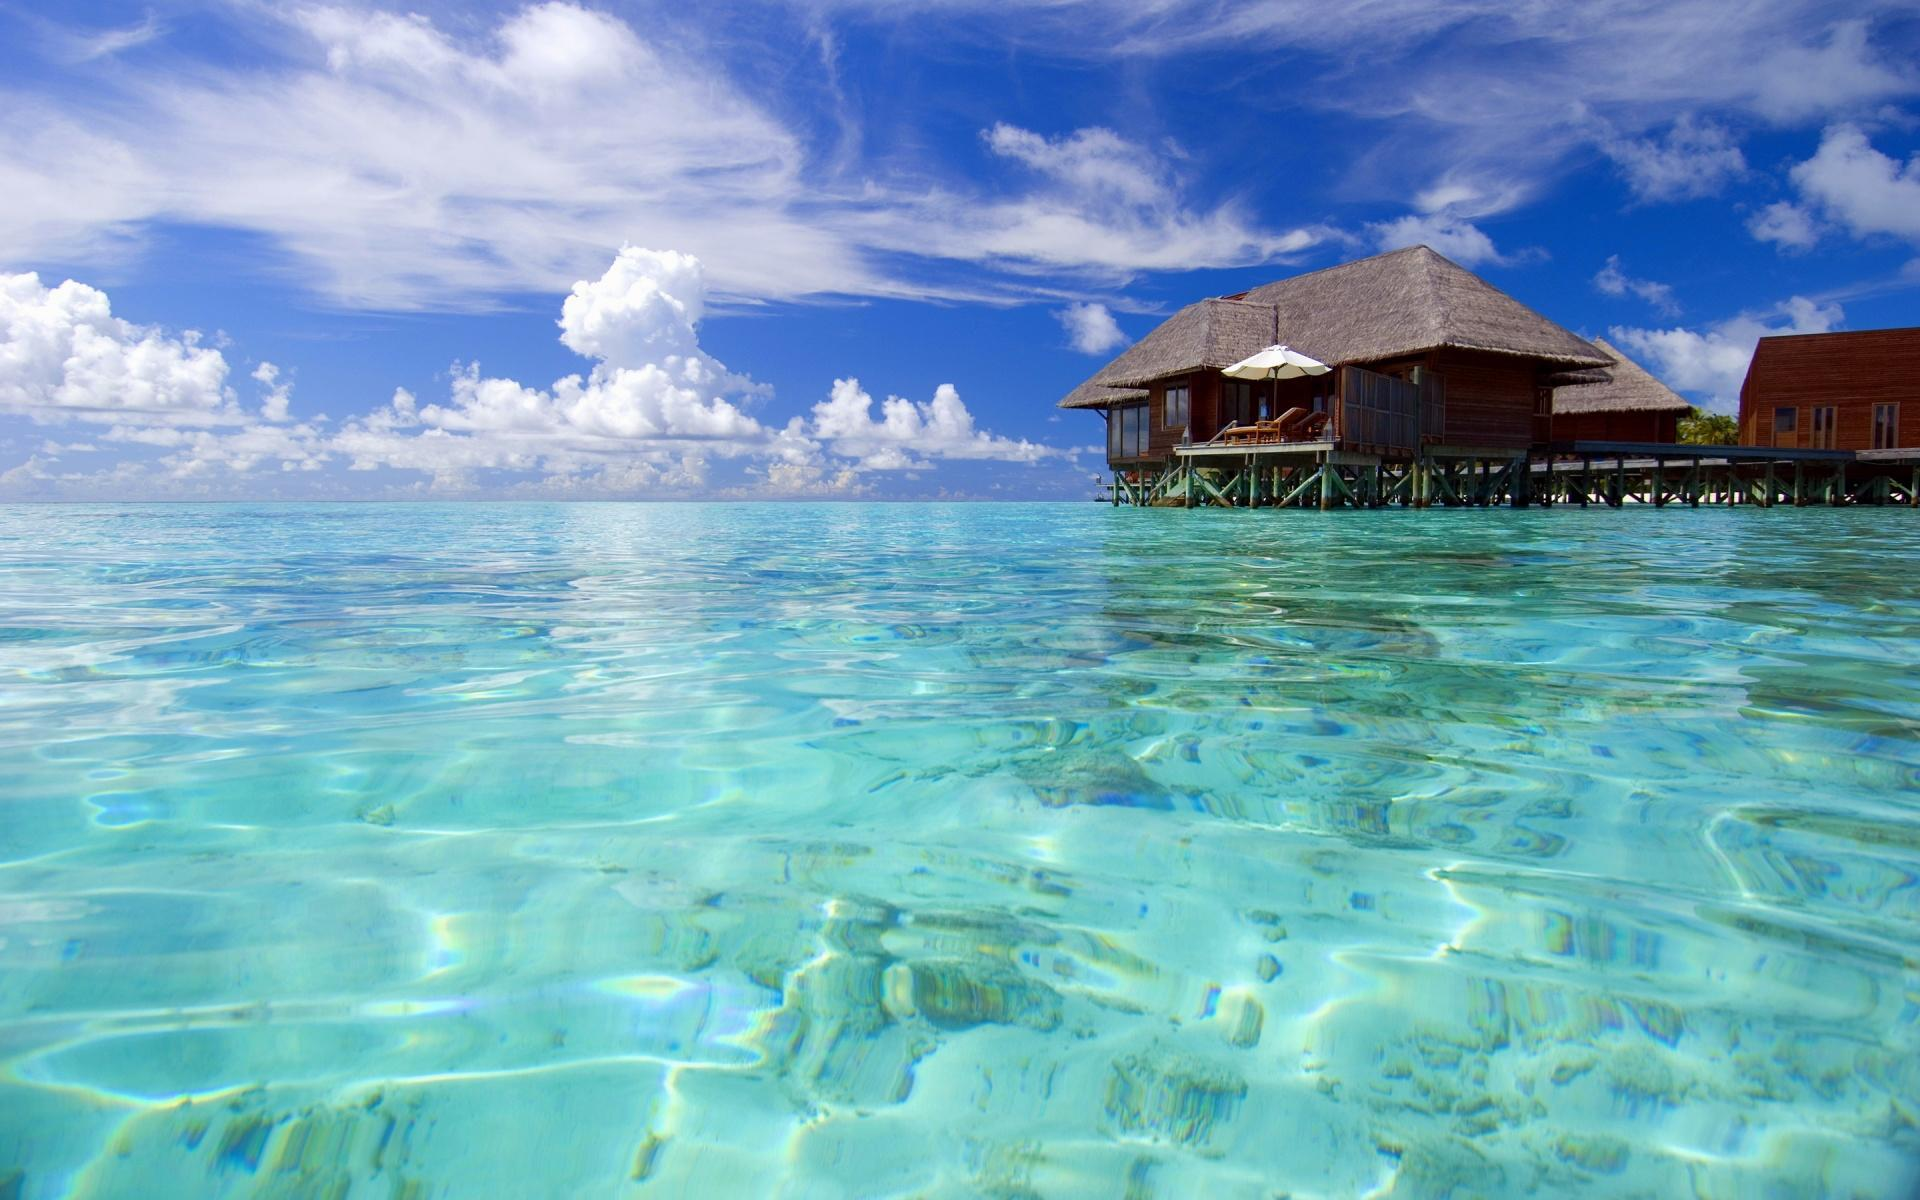 Maldives Wallpapers HD Backgrounds, Image, Pics, Photos Free